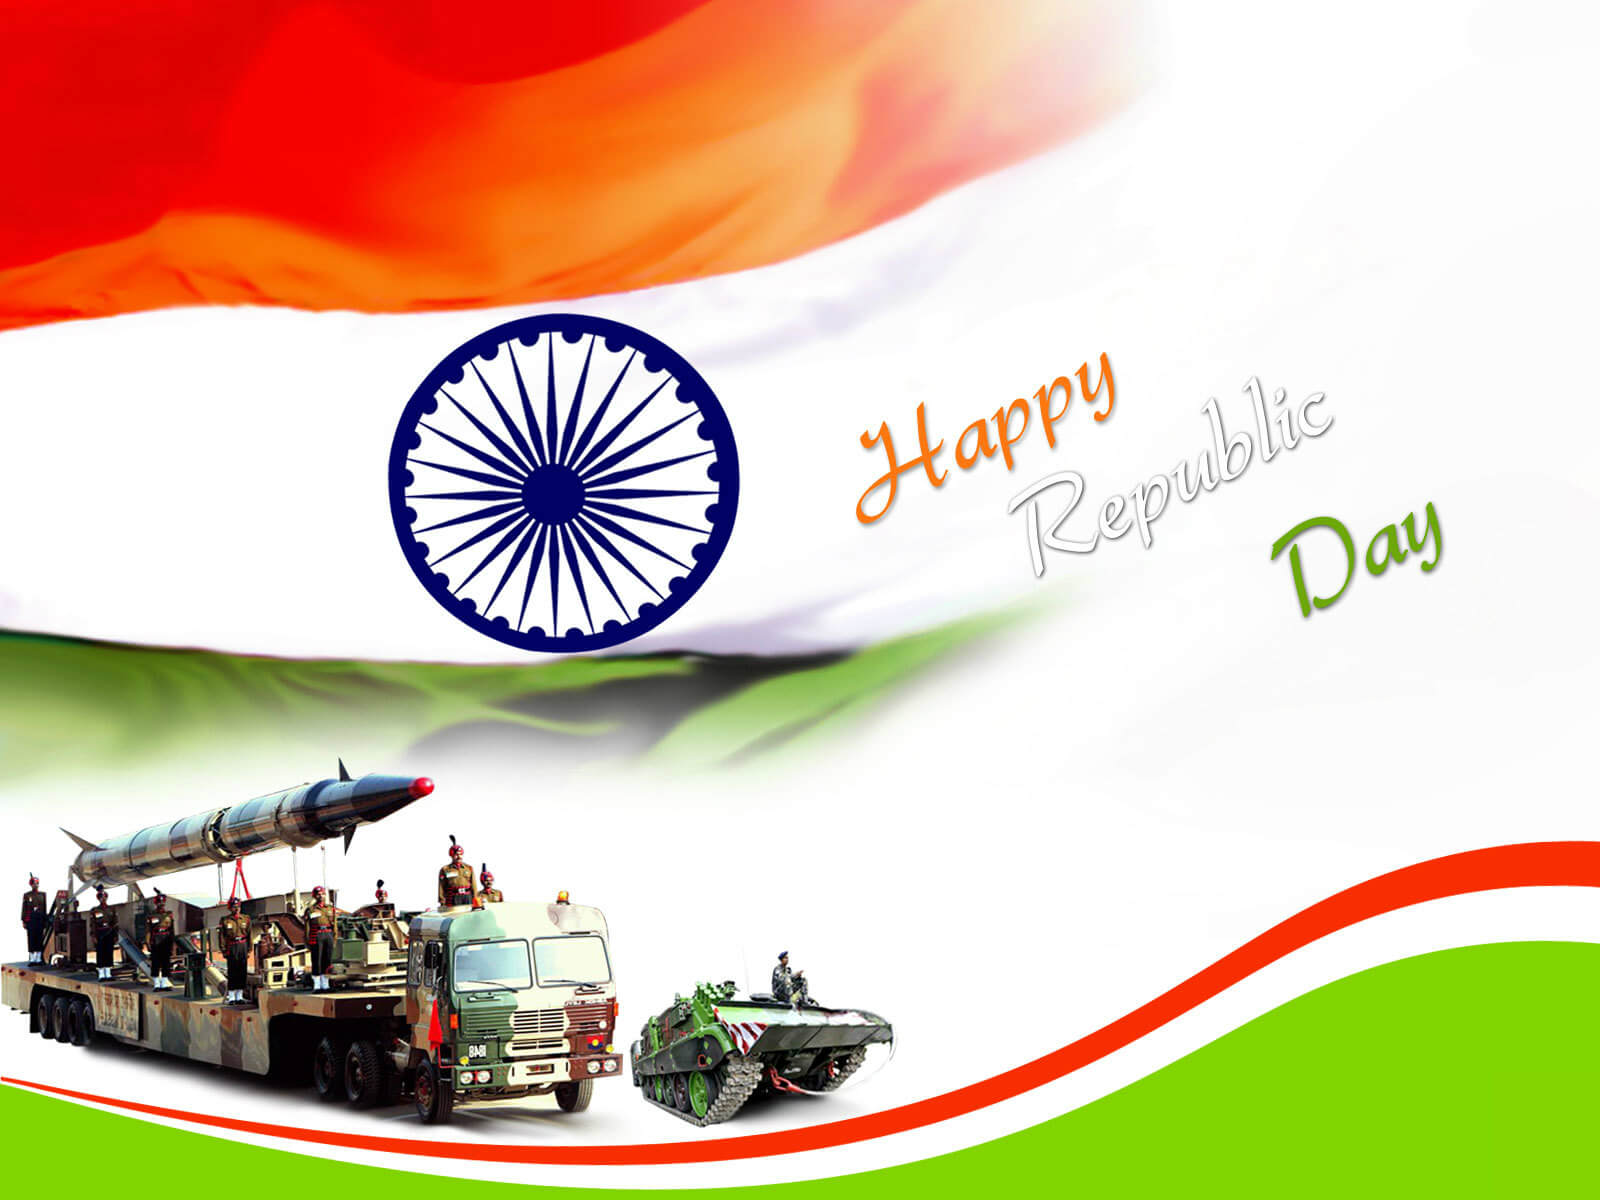 happy republic day wishes greetings india army 26th january hd wallpaper